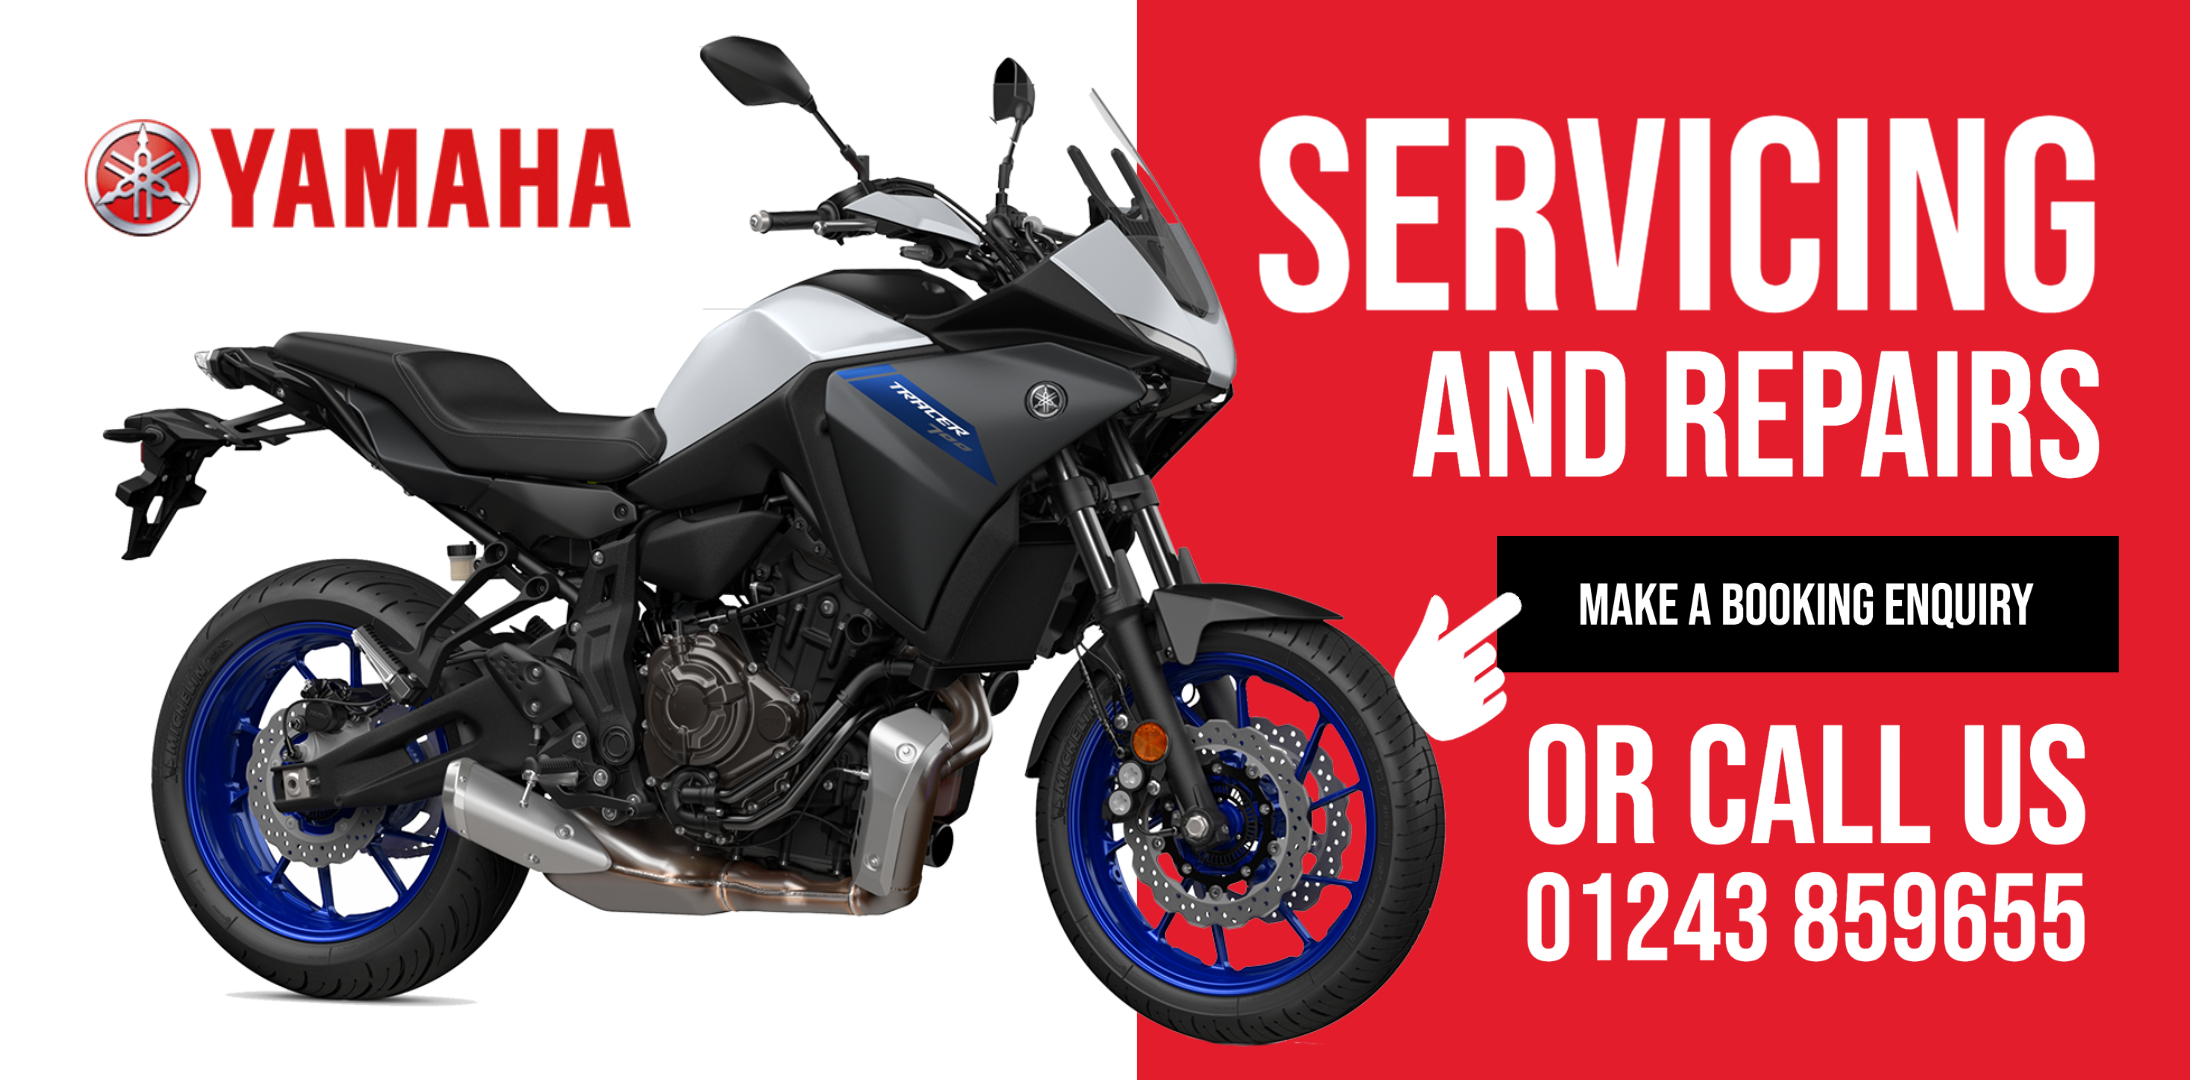 Yamaha Motorcycle Servicing